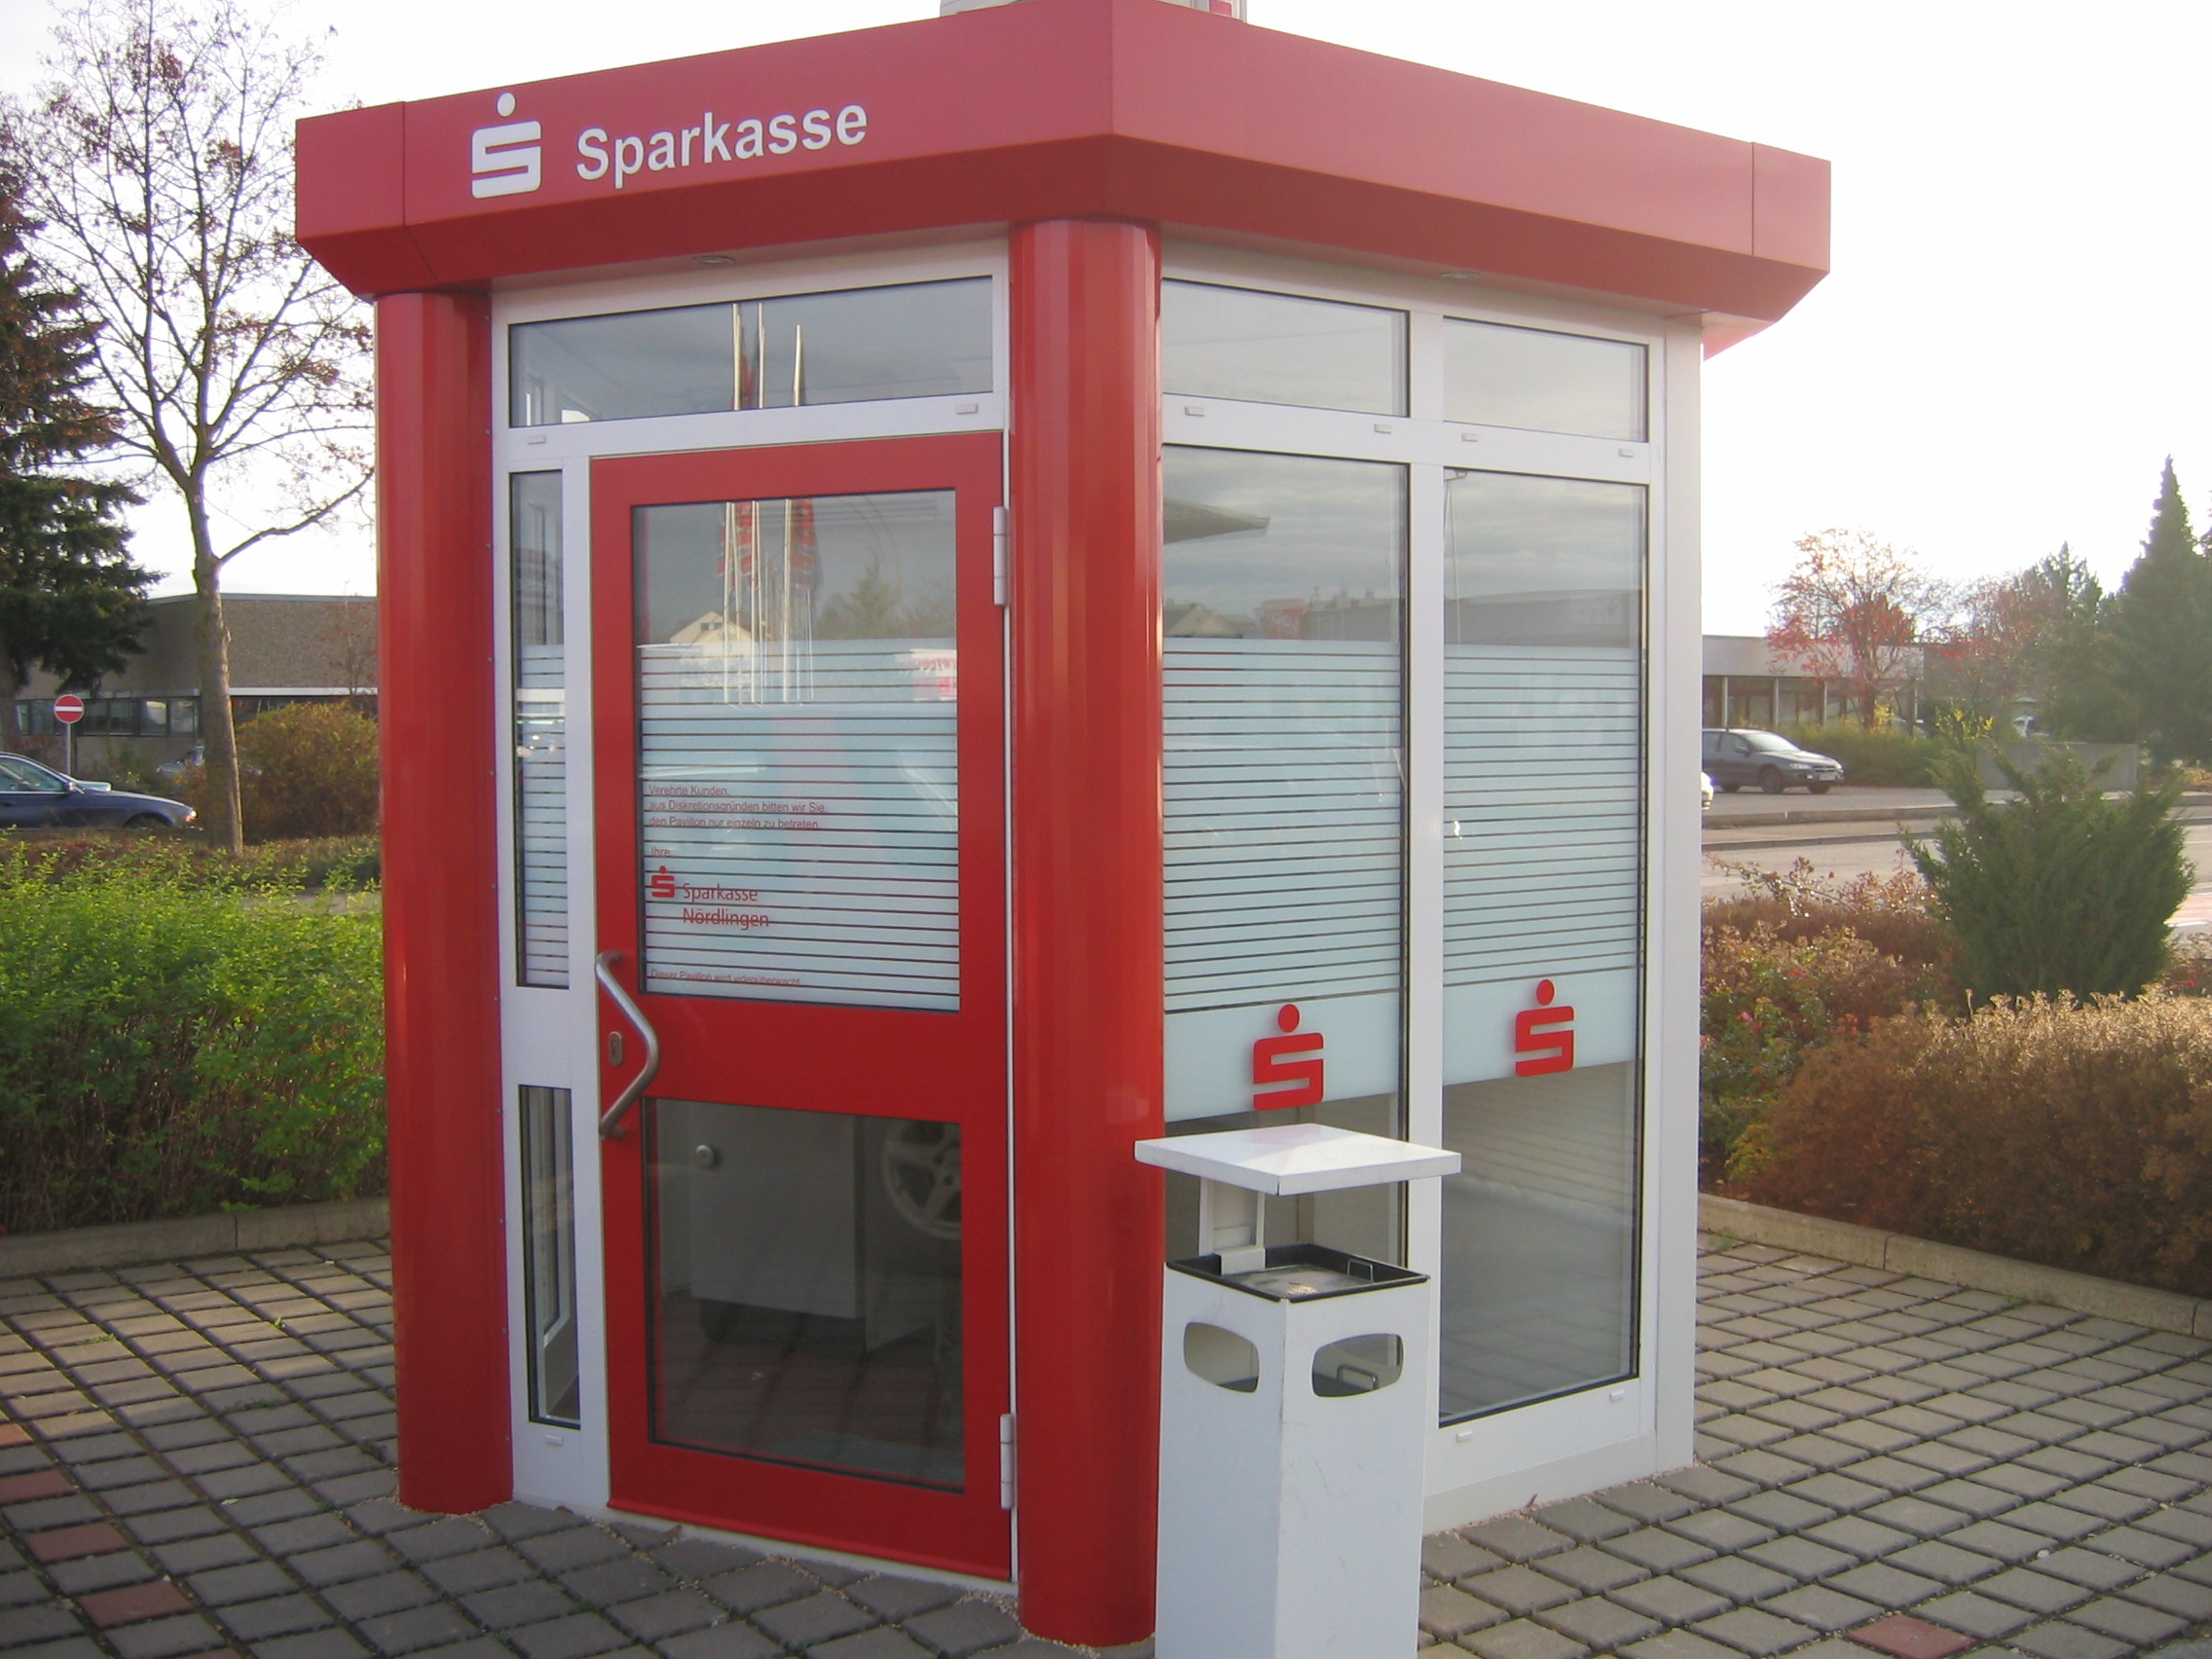 Sparkasse SB-Center Nördlingen, Hofer Str.